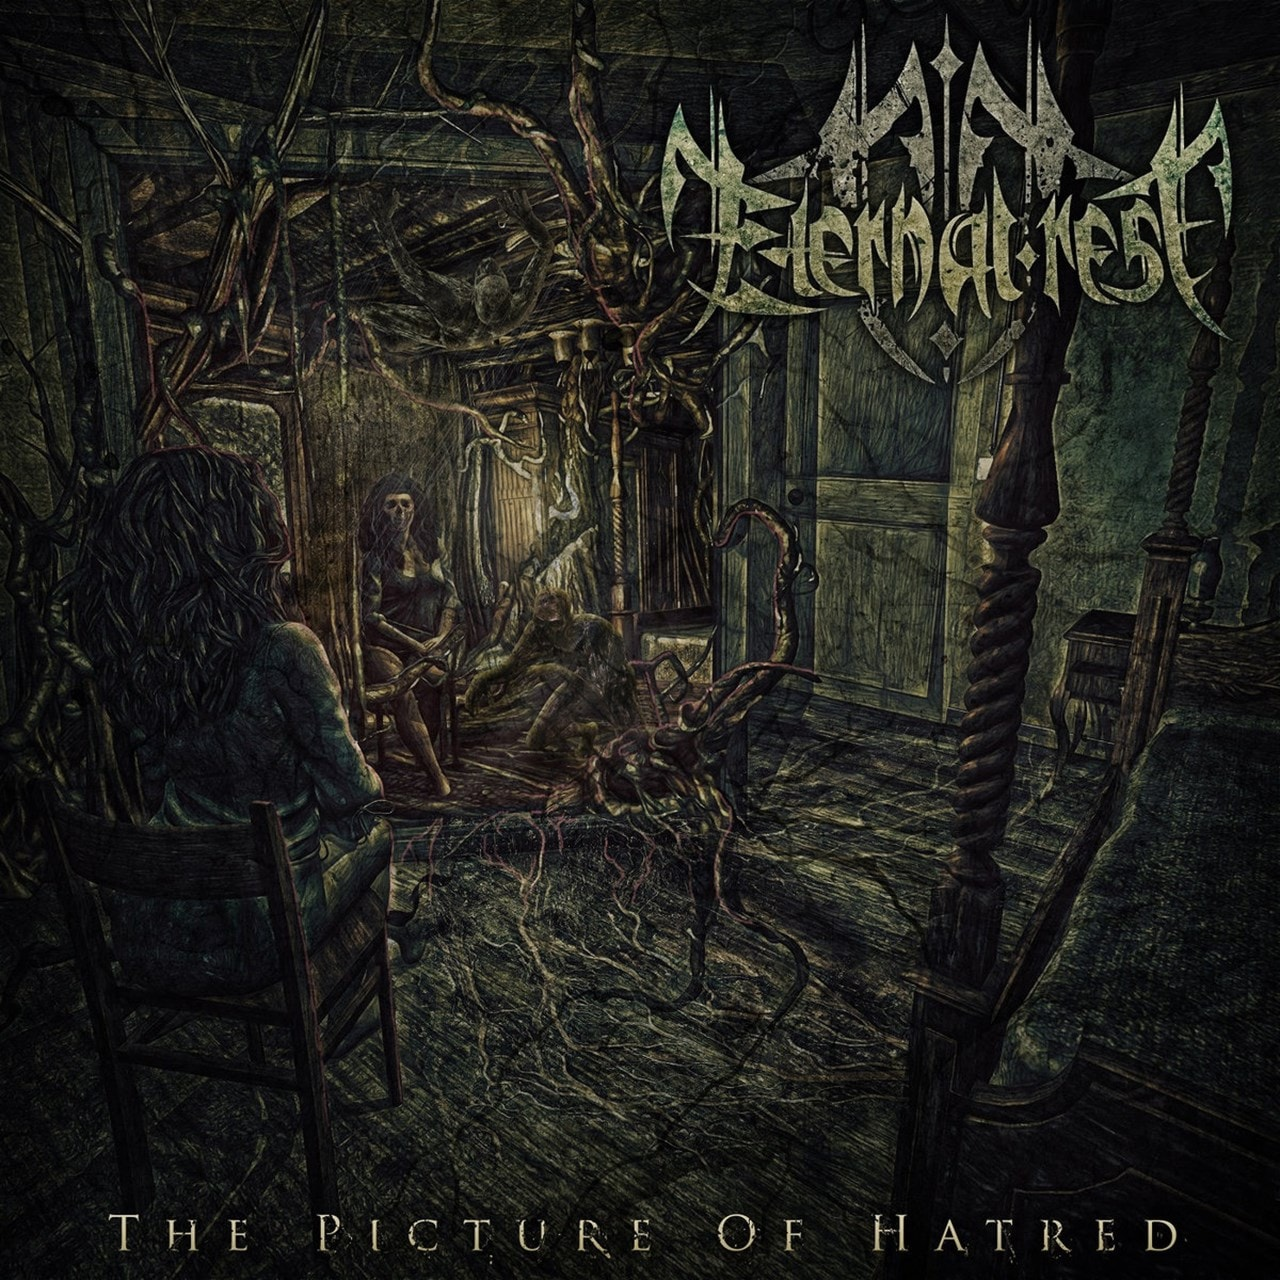 The Picture of Hatred - 1